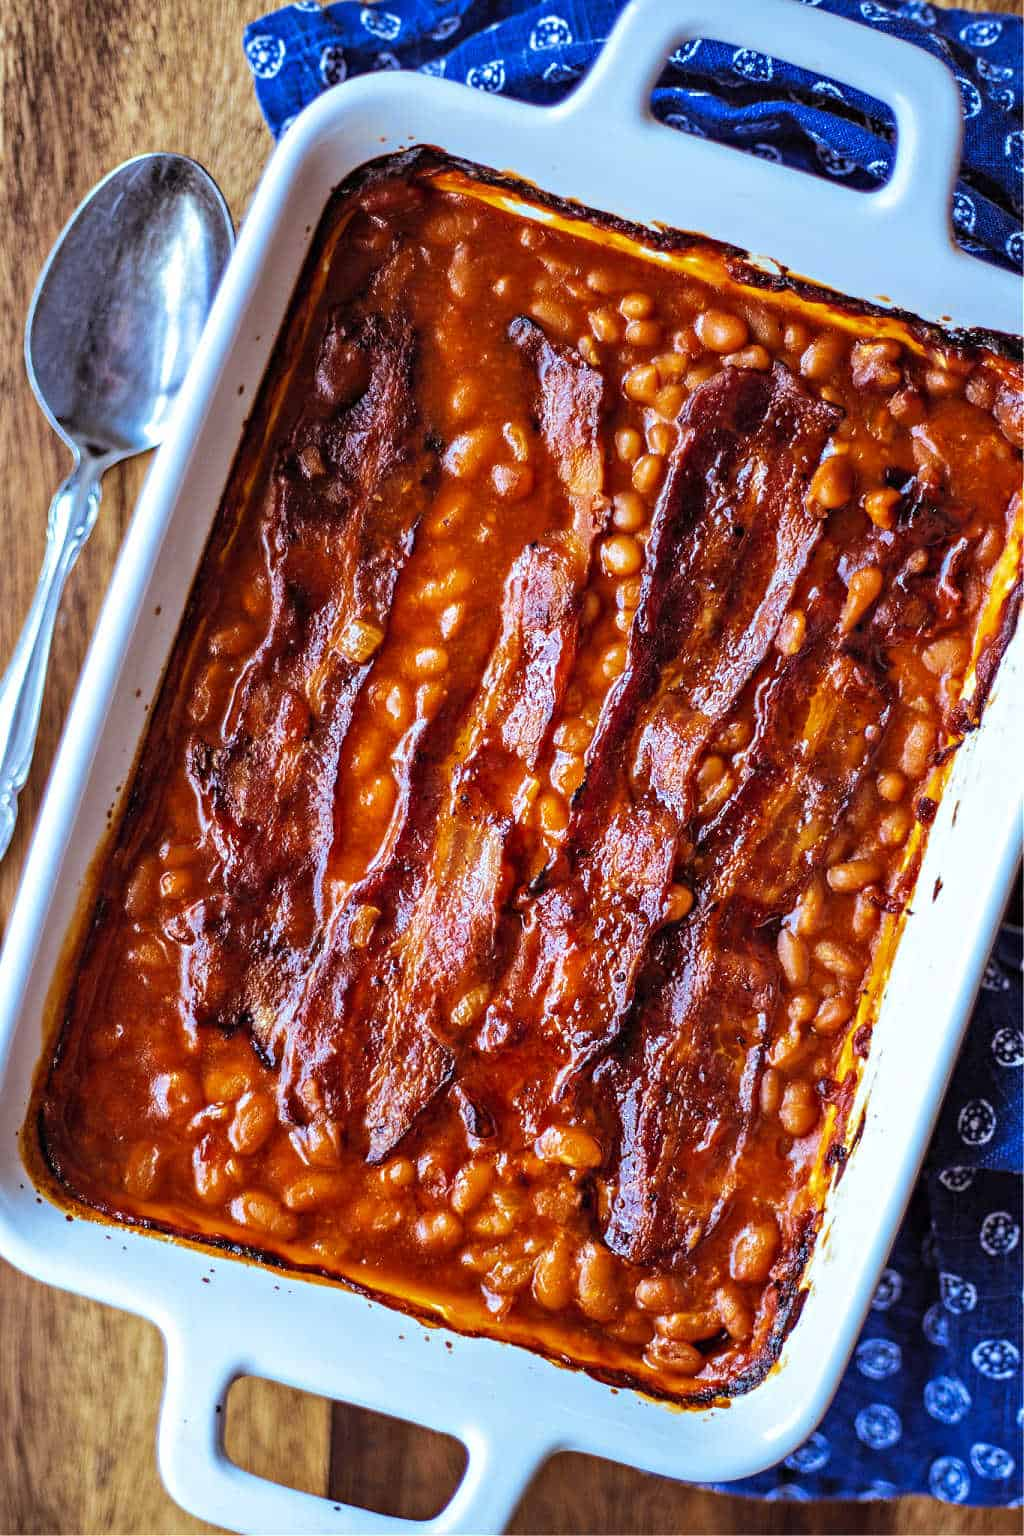 a baking dish of baked beans and bacon on a wooden table